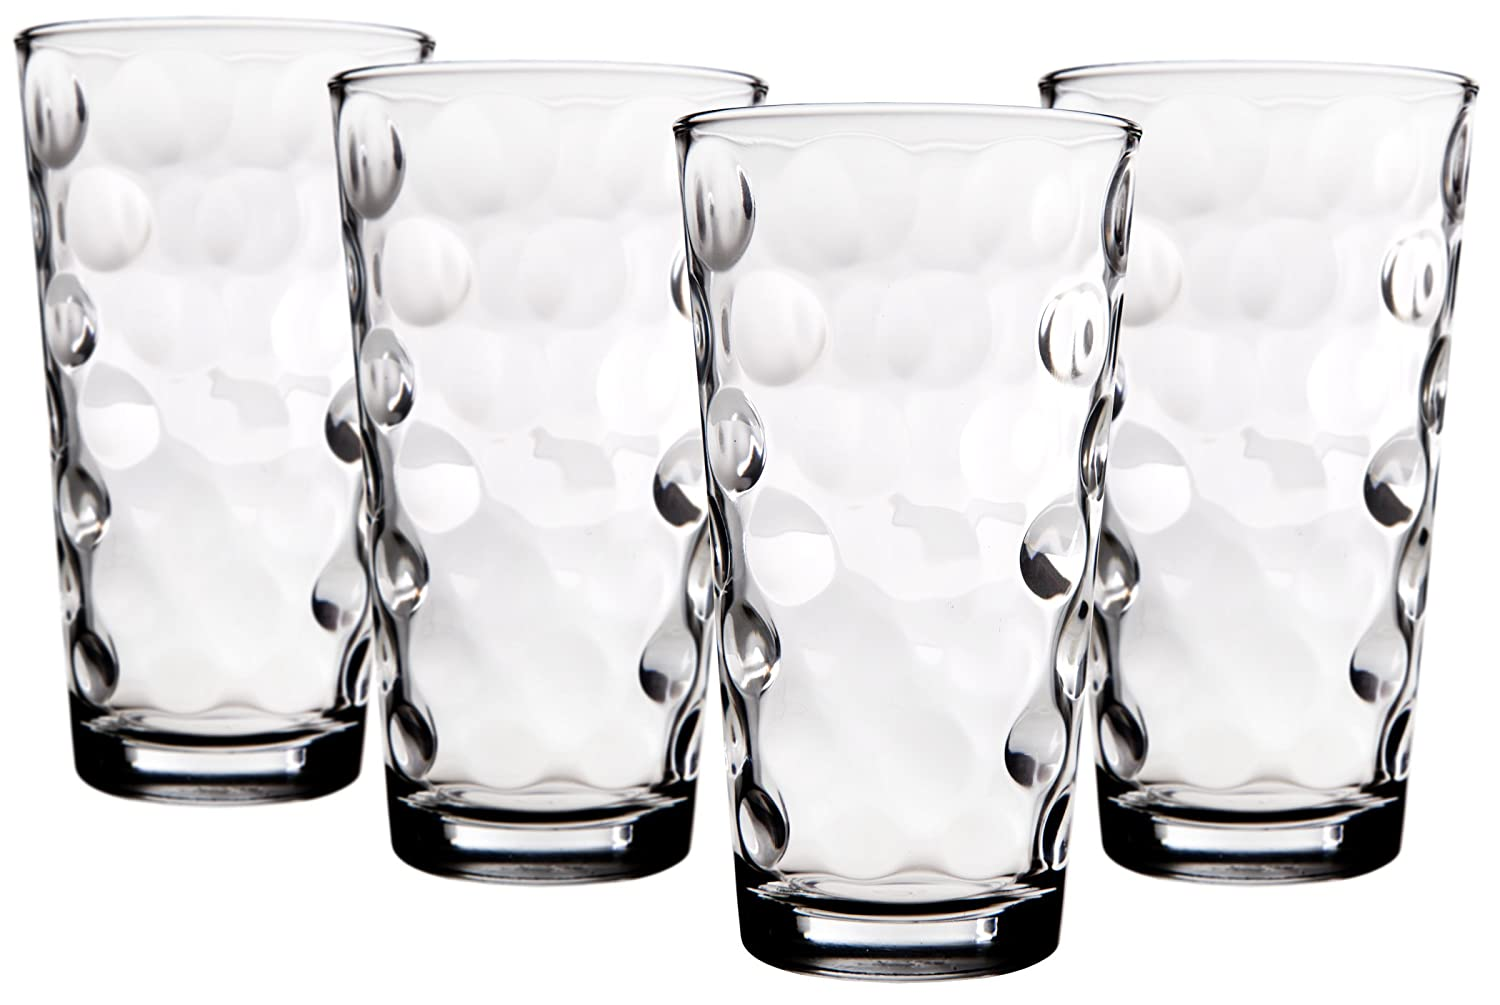 Superior Home N Gifts Eclipse HighBall Glasses | 17 oz Clear Drinking Glasses, Set of 4 Highball Glasses for Mixed Drink Cocktails & Other Beverages